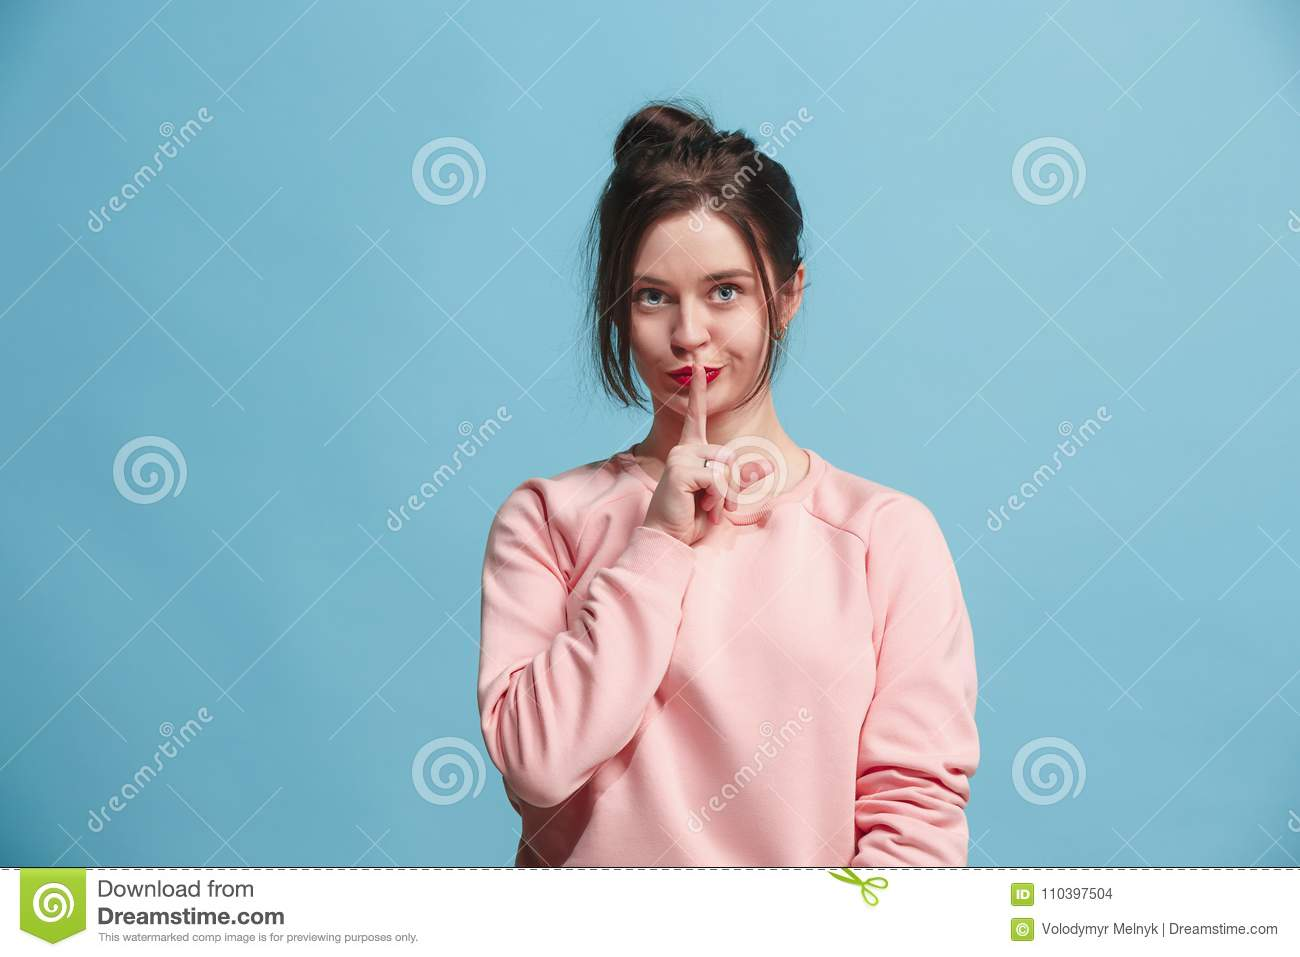 The young woman whispering a secret behind her hand over blue background